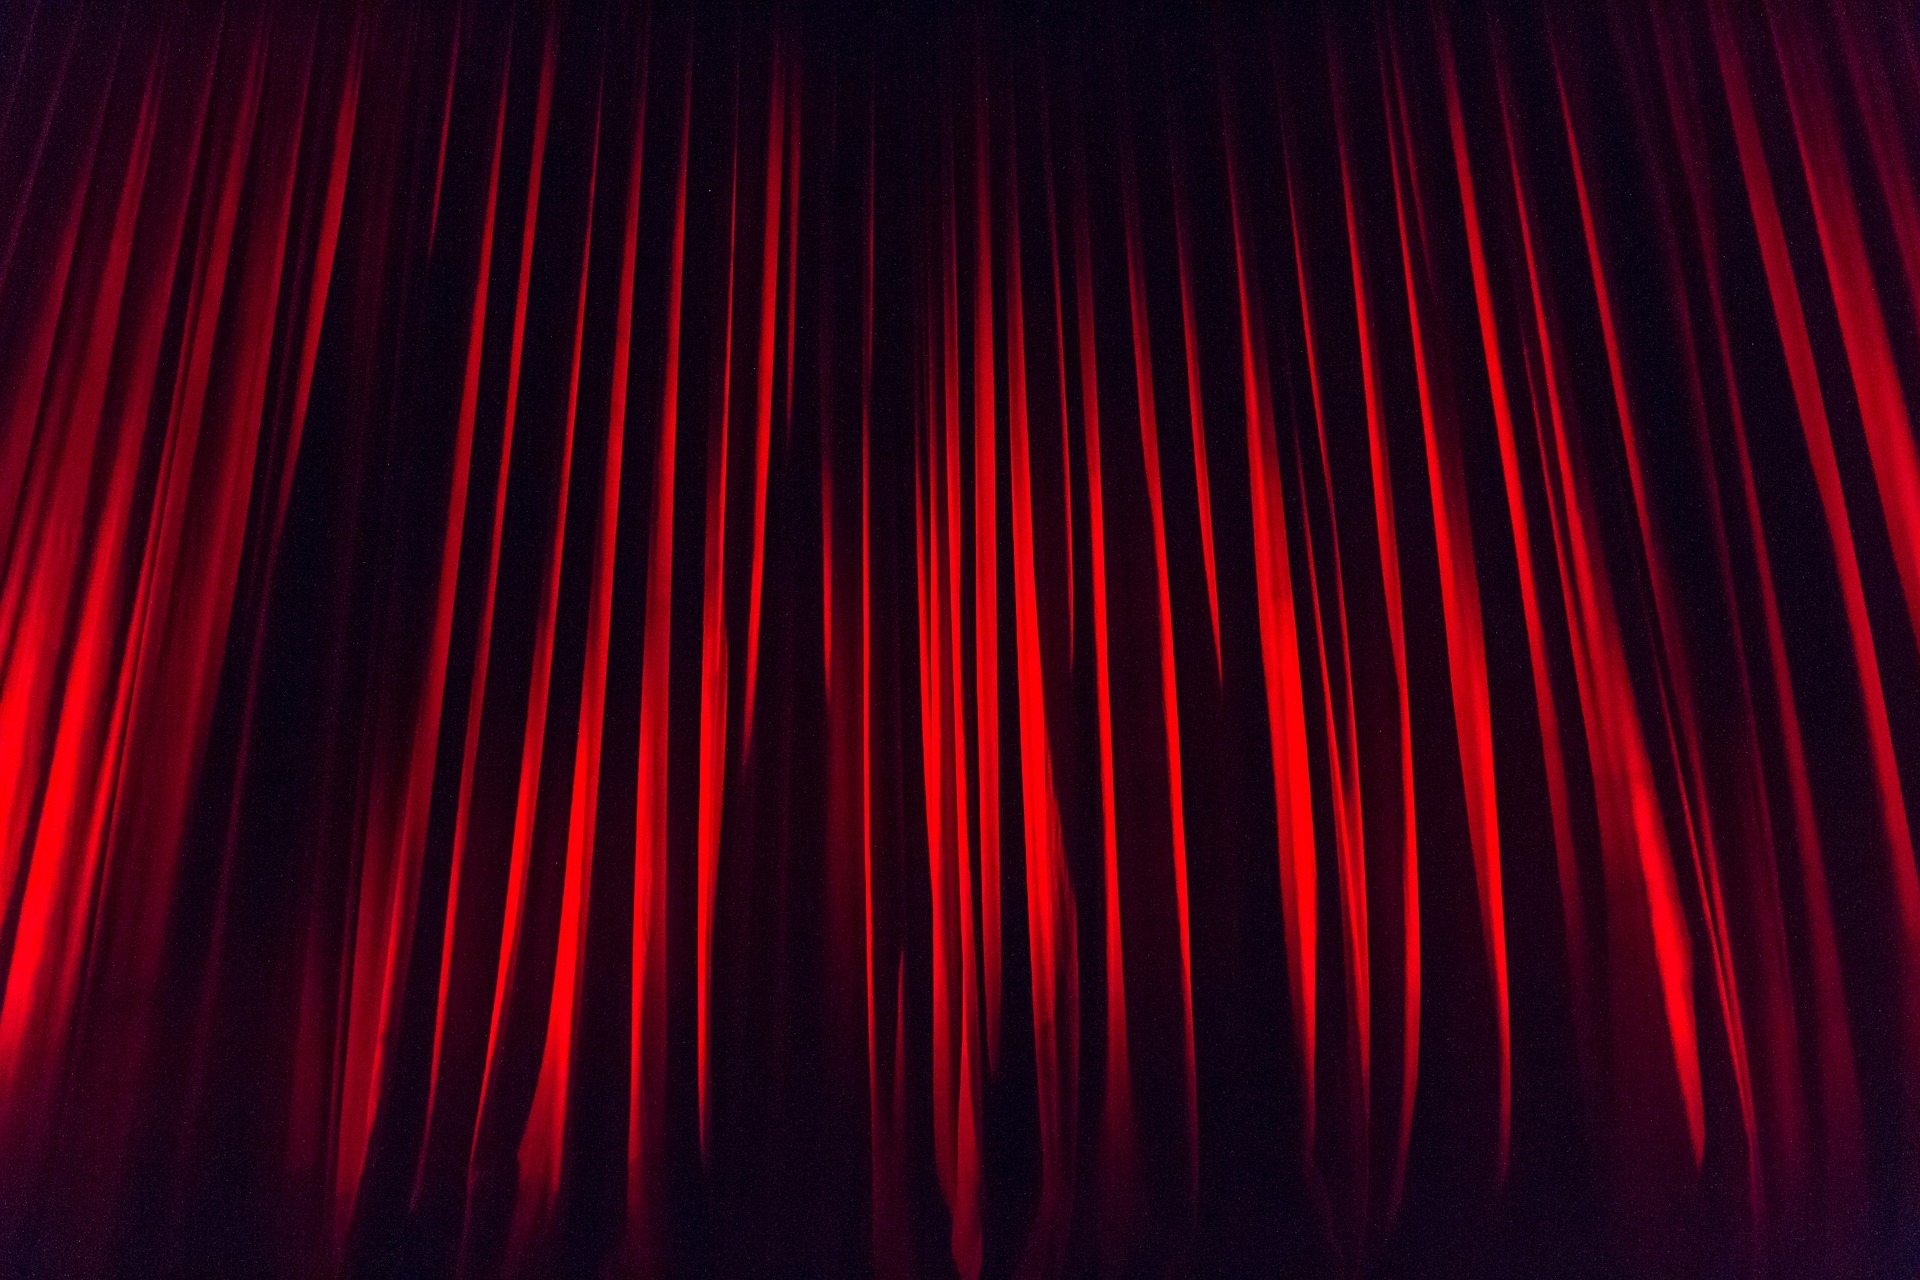 stage-curtain-660078_1920.jpg